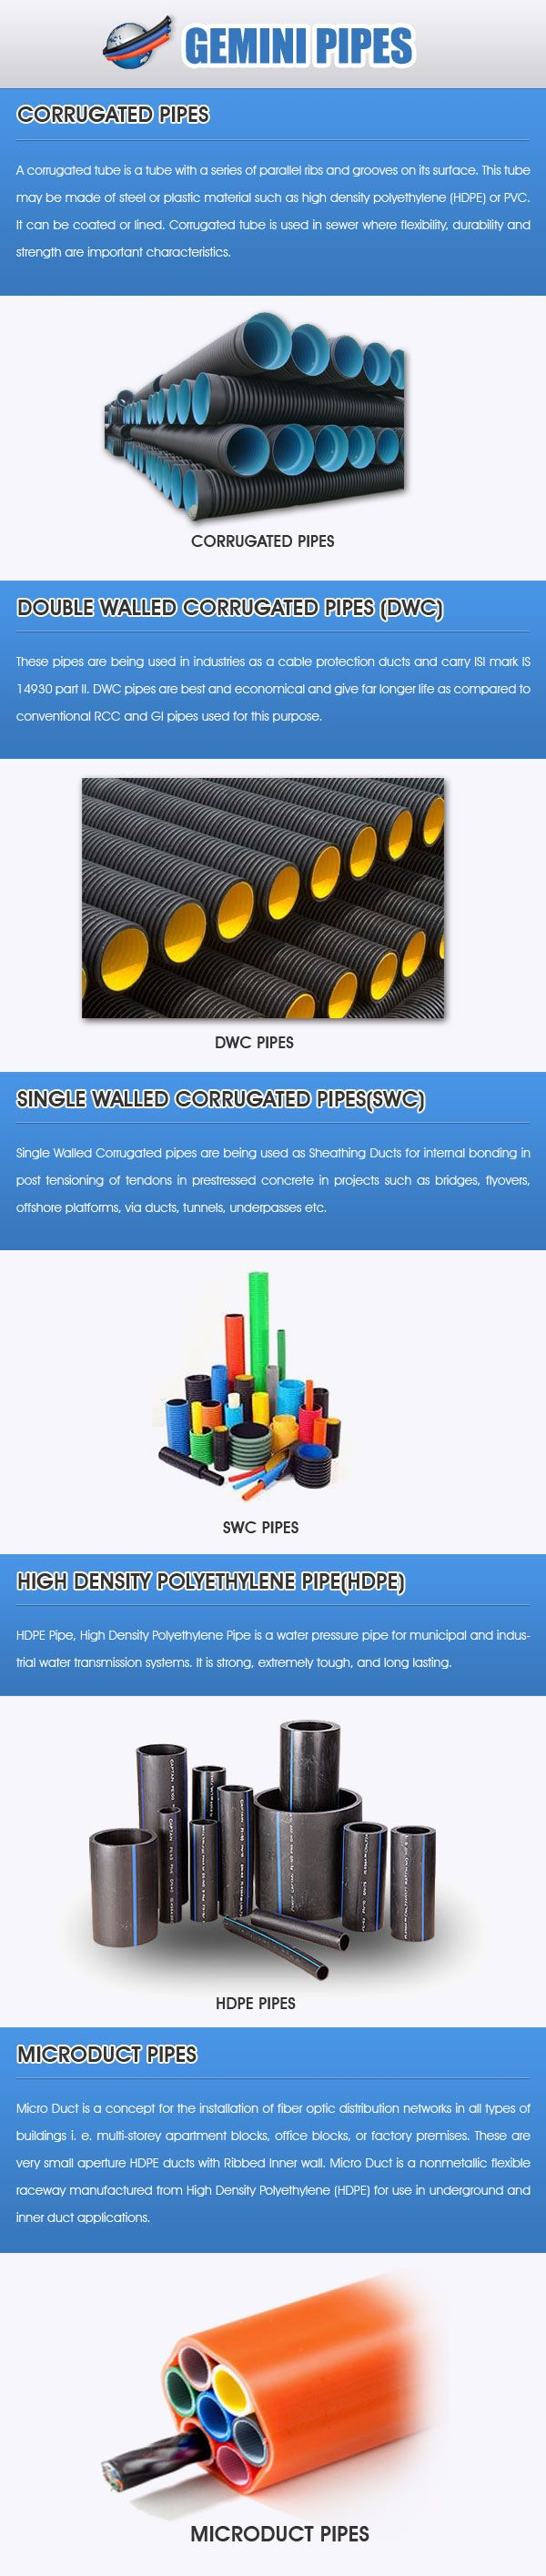 Gemini pipes provides Corrugated pipes, Double wall corrugated pipes, single wall corrugated pipes, Microduct pipes and High density plastic pipes.